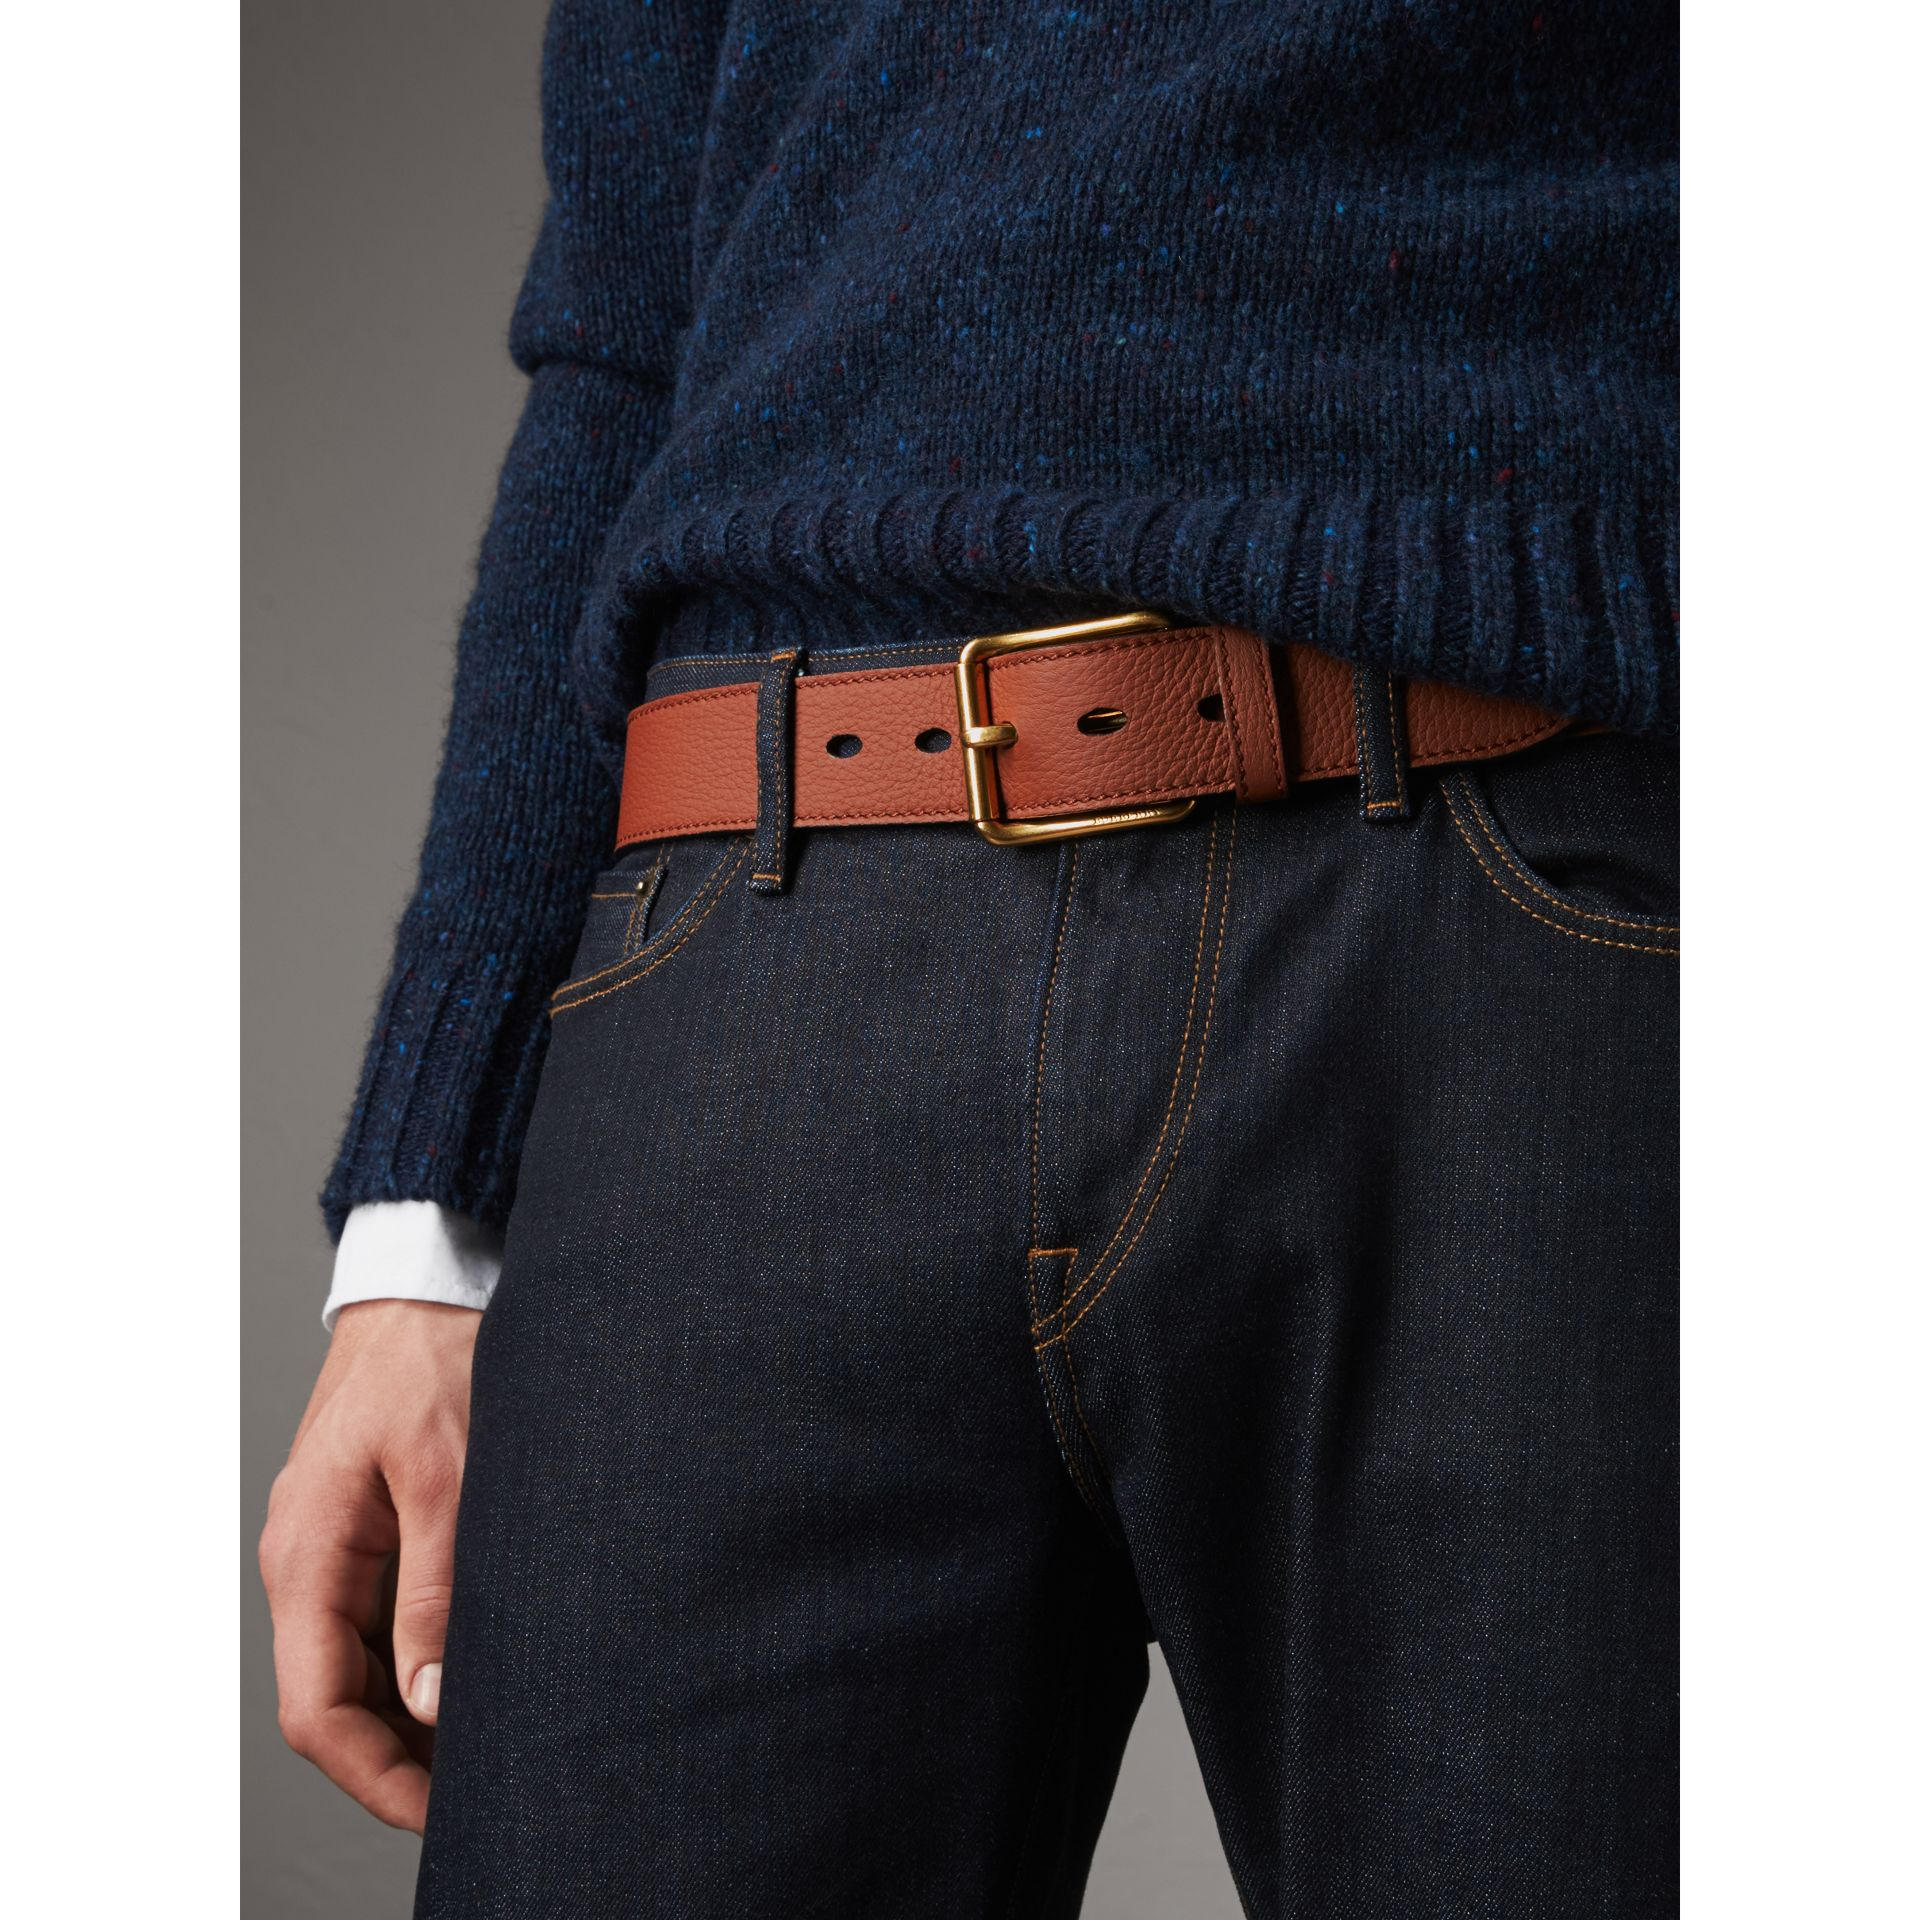 Grainy Leather Belt in Chestnut Brown - Men | Burberry United States - gallery image 2